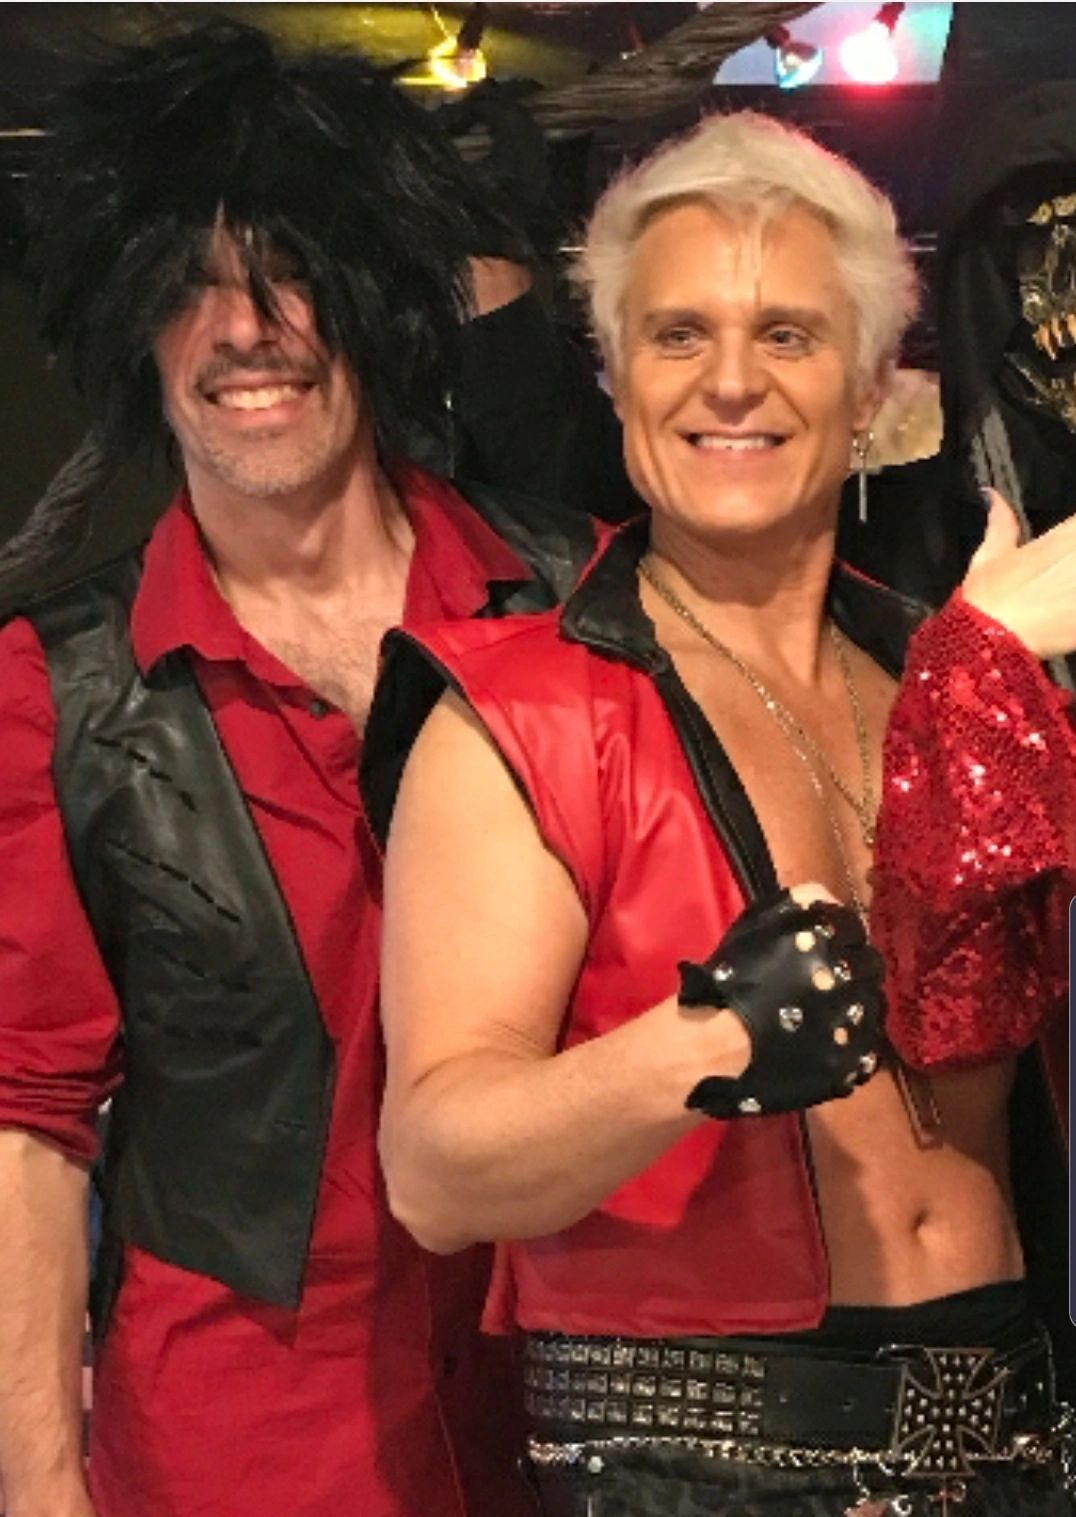 Billy Idol and Steve Stevens Tribute Band Steve Klee as Billy and Billy Bressette as Steve Stevens